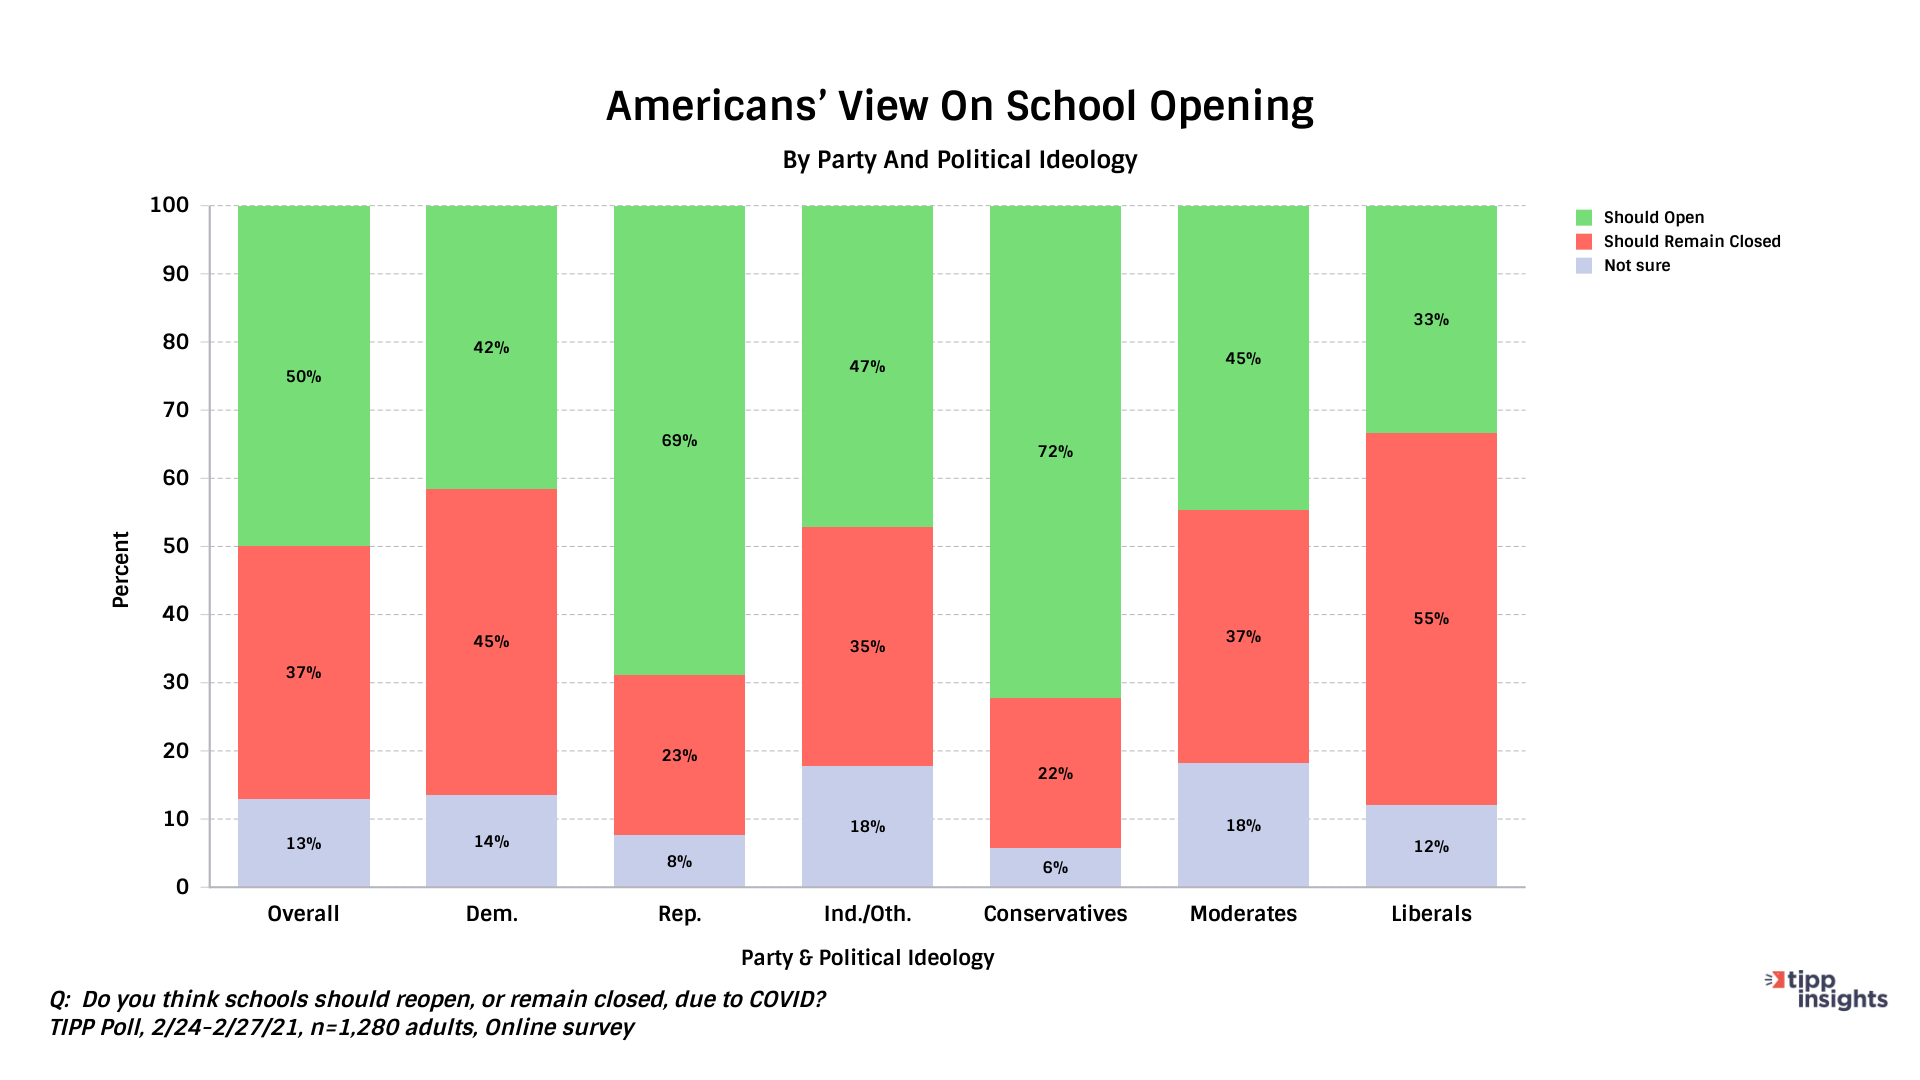 TIPP Poll Results, American's view on schools opening during COVID19